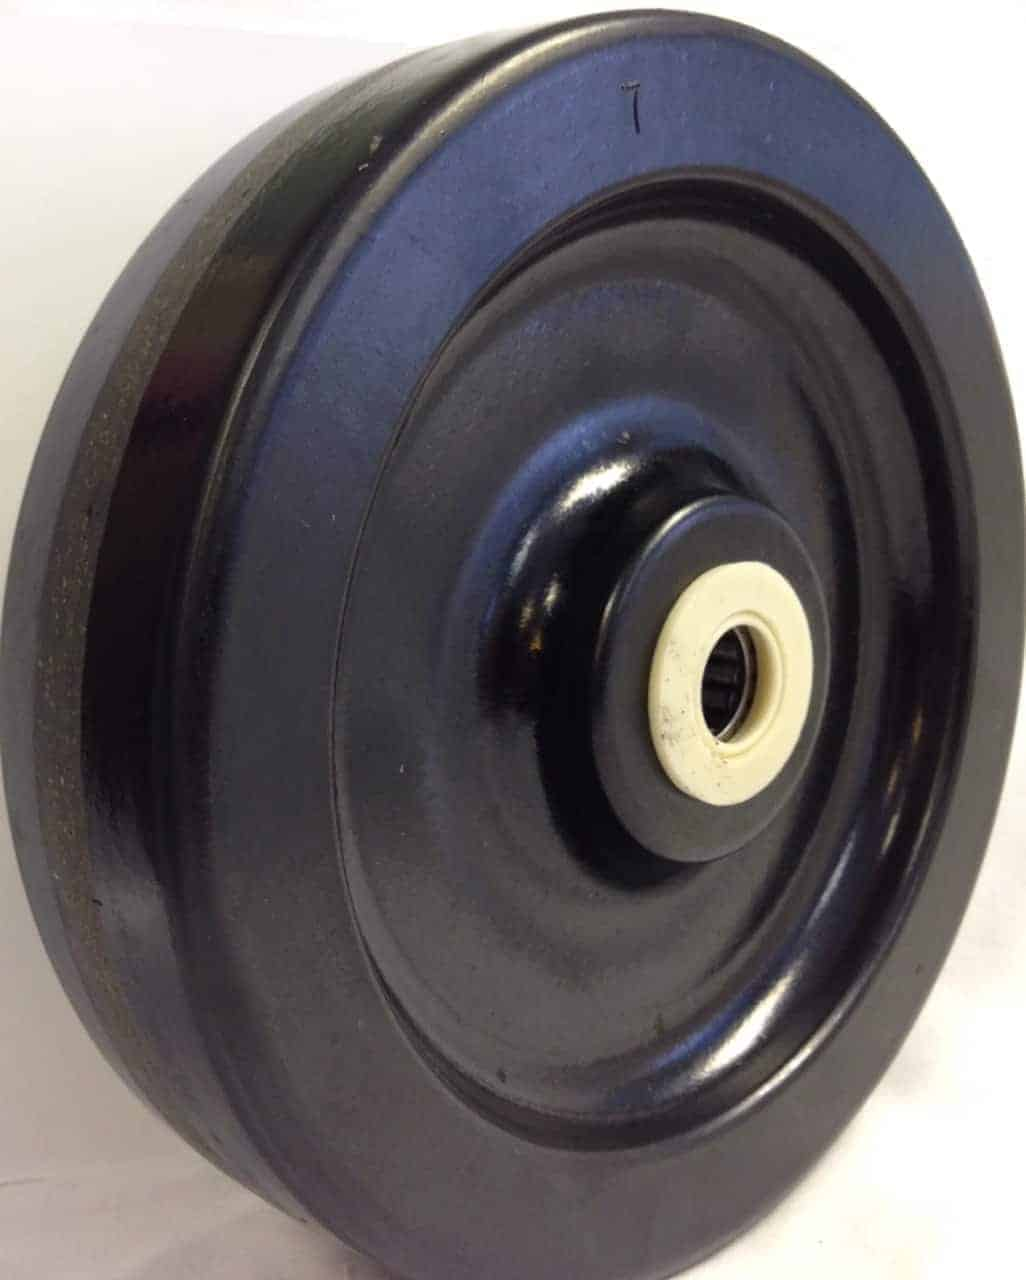 10″ Phenolic Wheel With 3-1/4″ Hub 1″ Roller Bearing 2500 Lbs Capacity